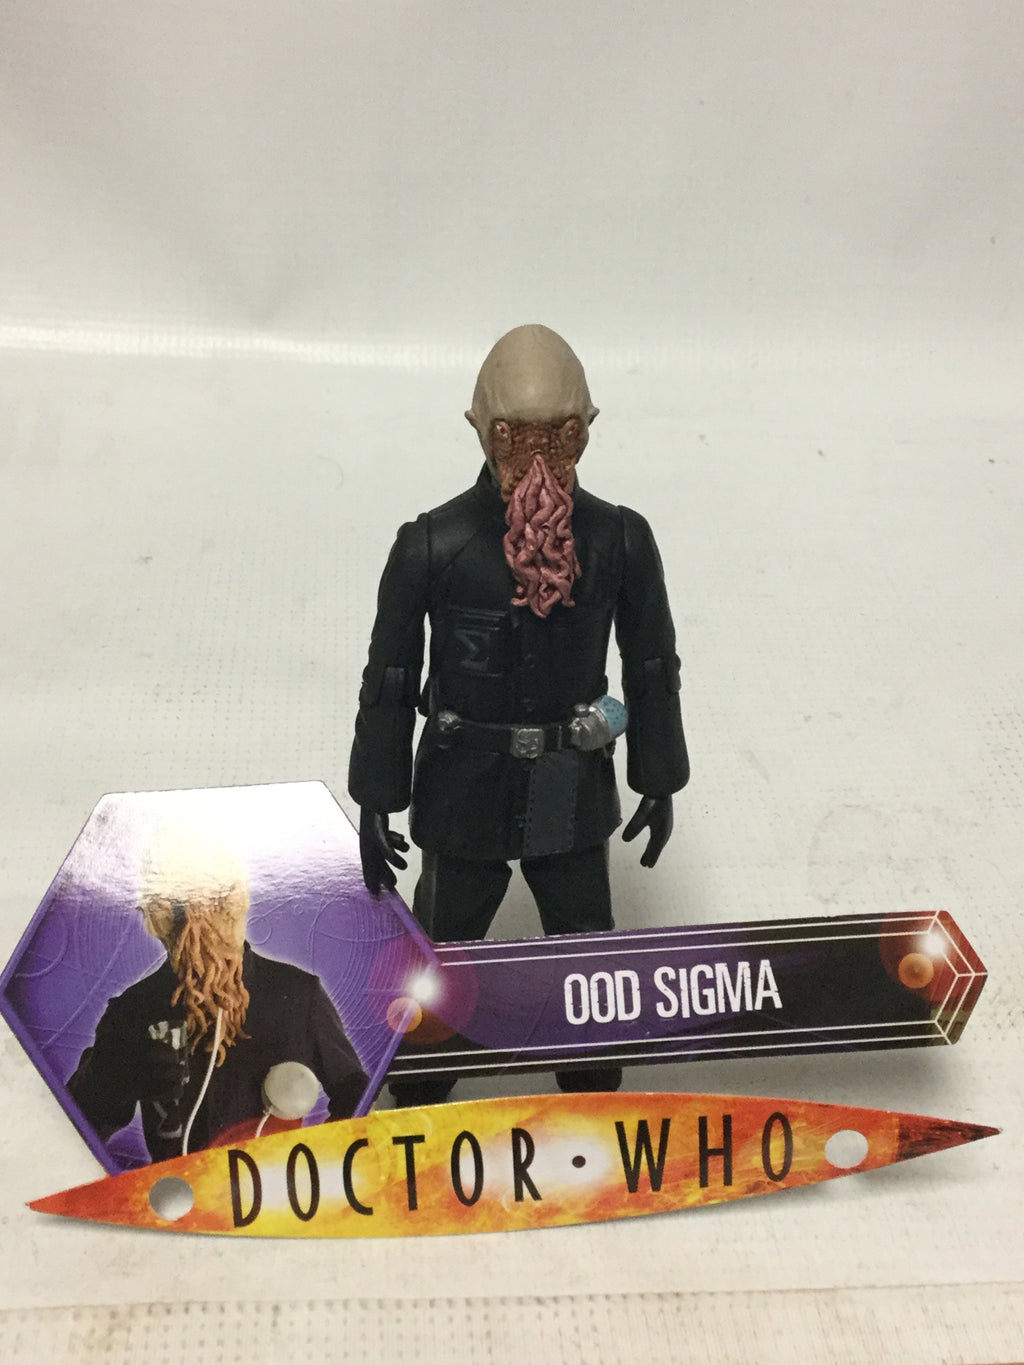 Doctor Who Ood Sigma